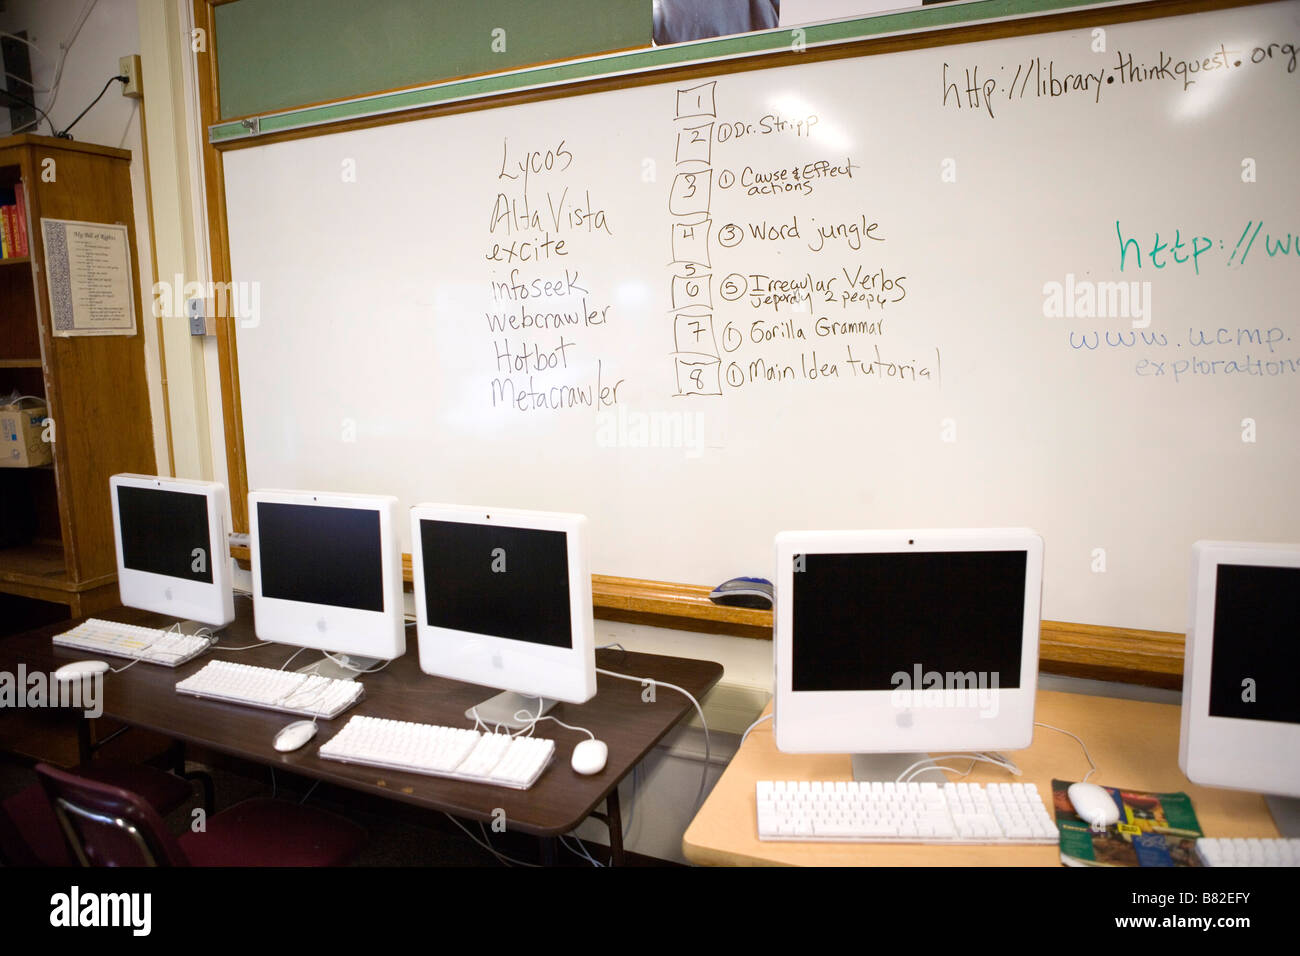 computer lab in public middle school, Mac computers, USA - Stock Image